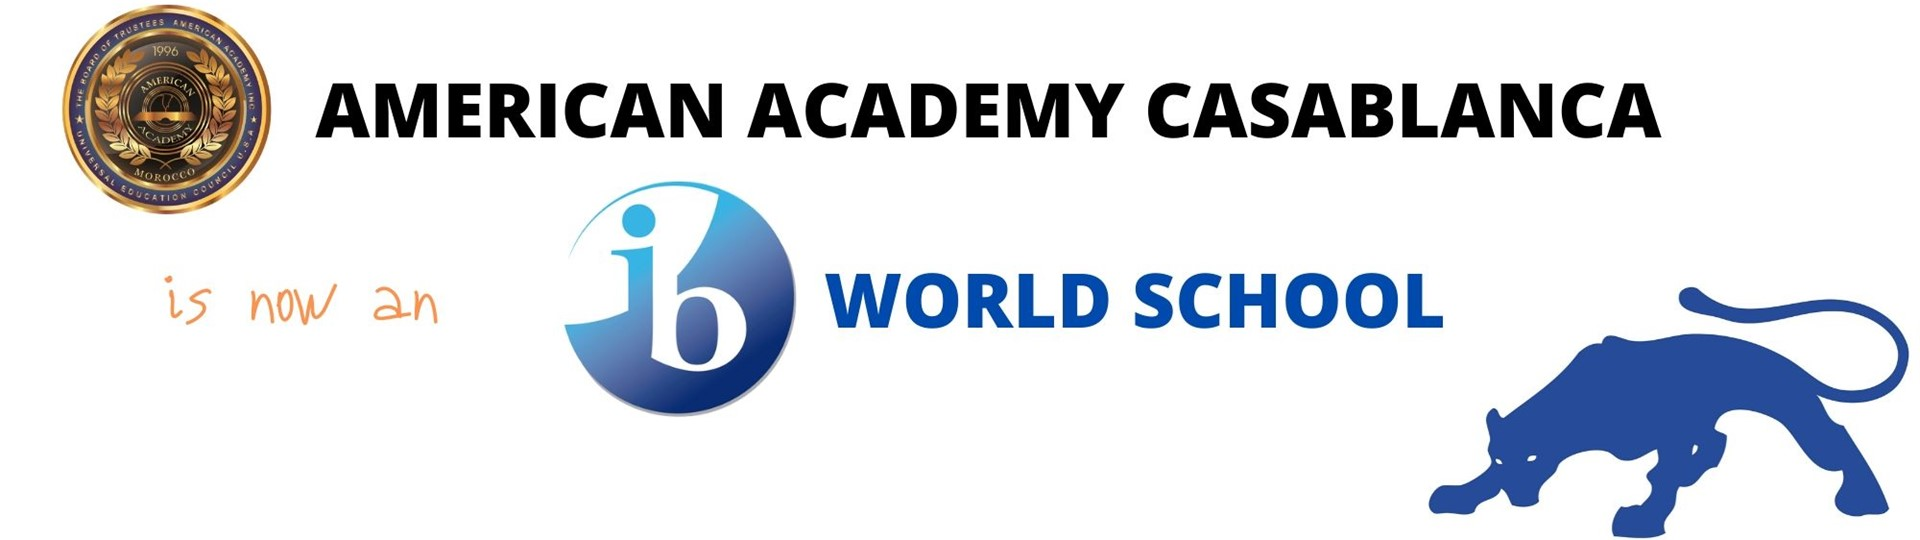 AAC is now IB world school